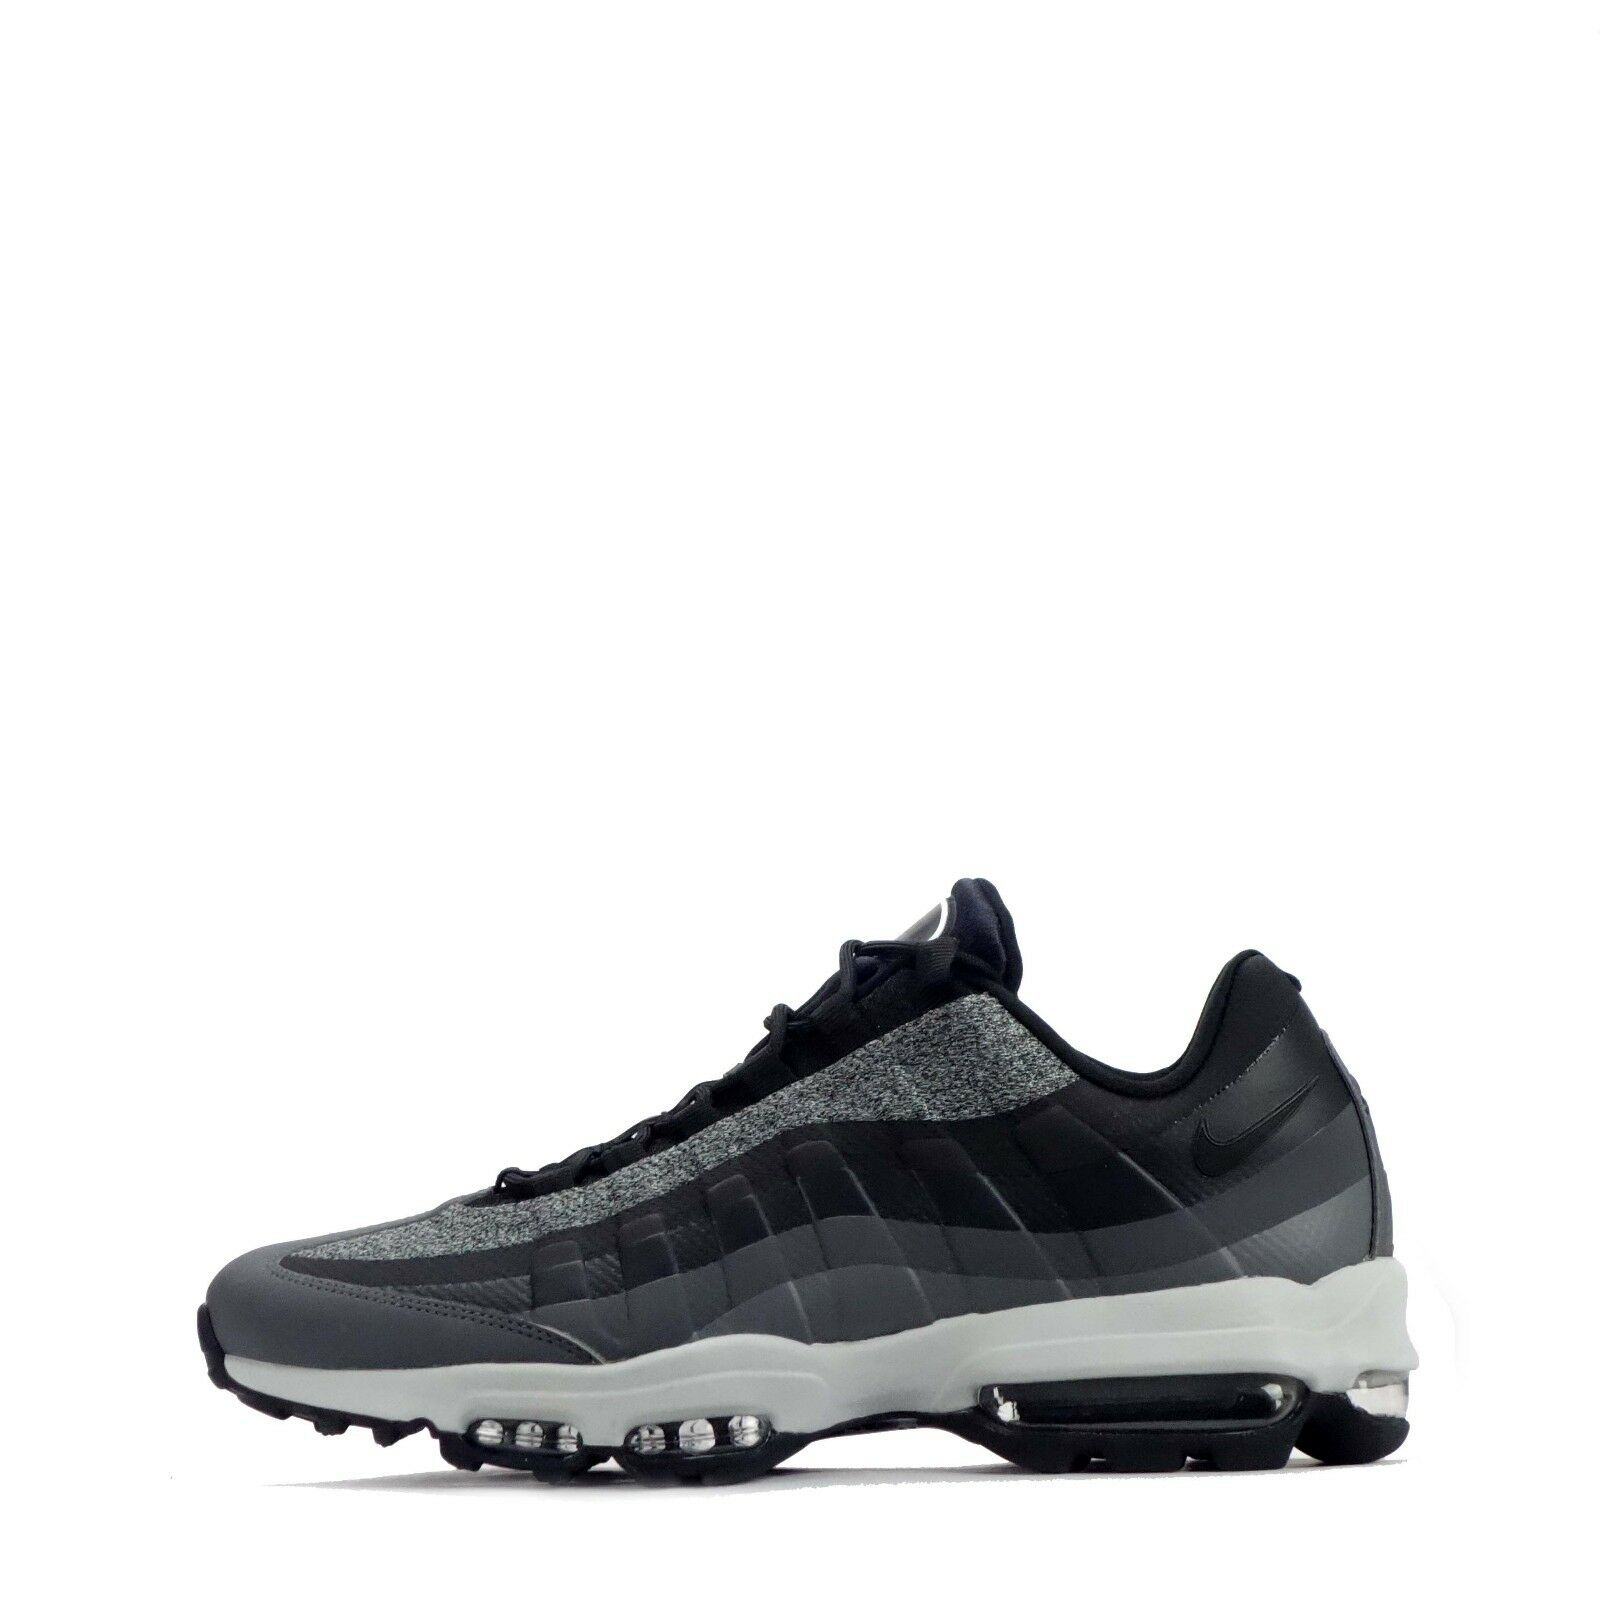 Nike Air Hommes Max 95 Ultra Essential Hommes Air  Chaussures  Noir /Anthracite 30aad9